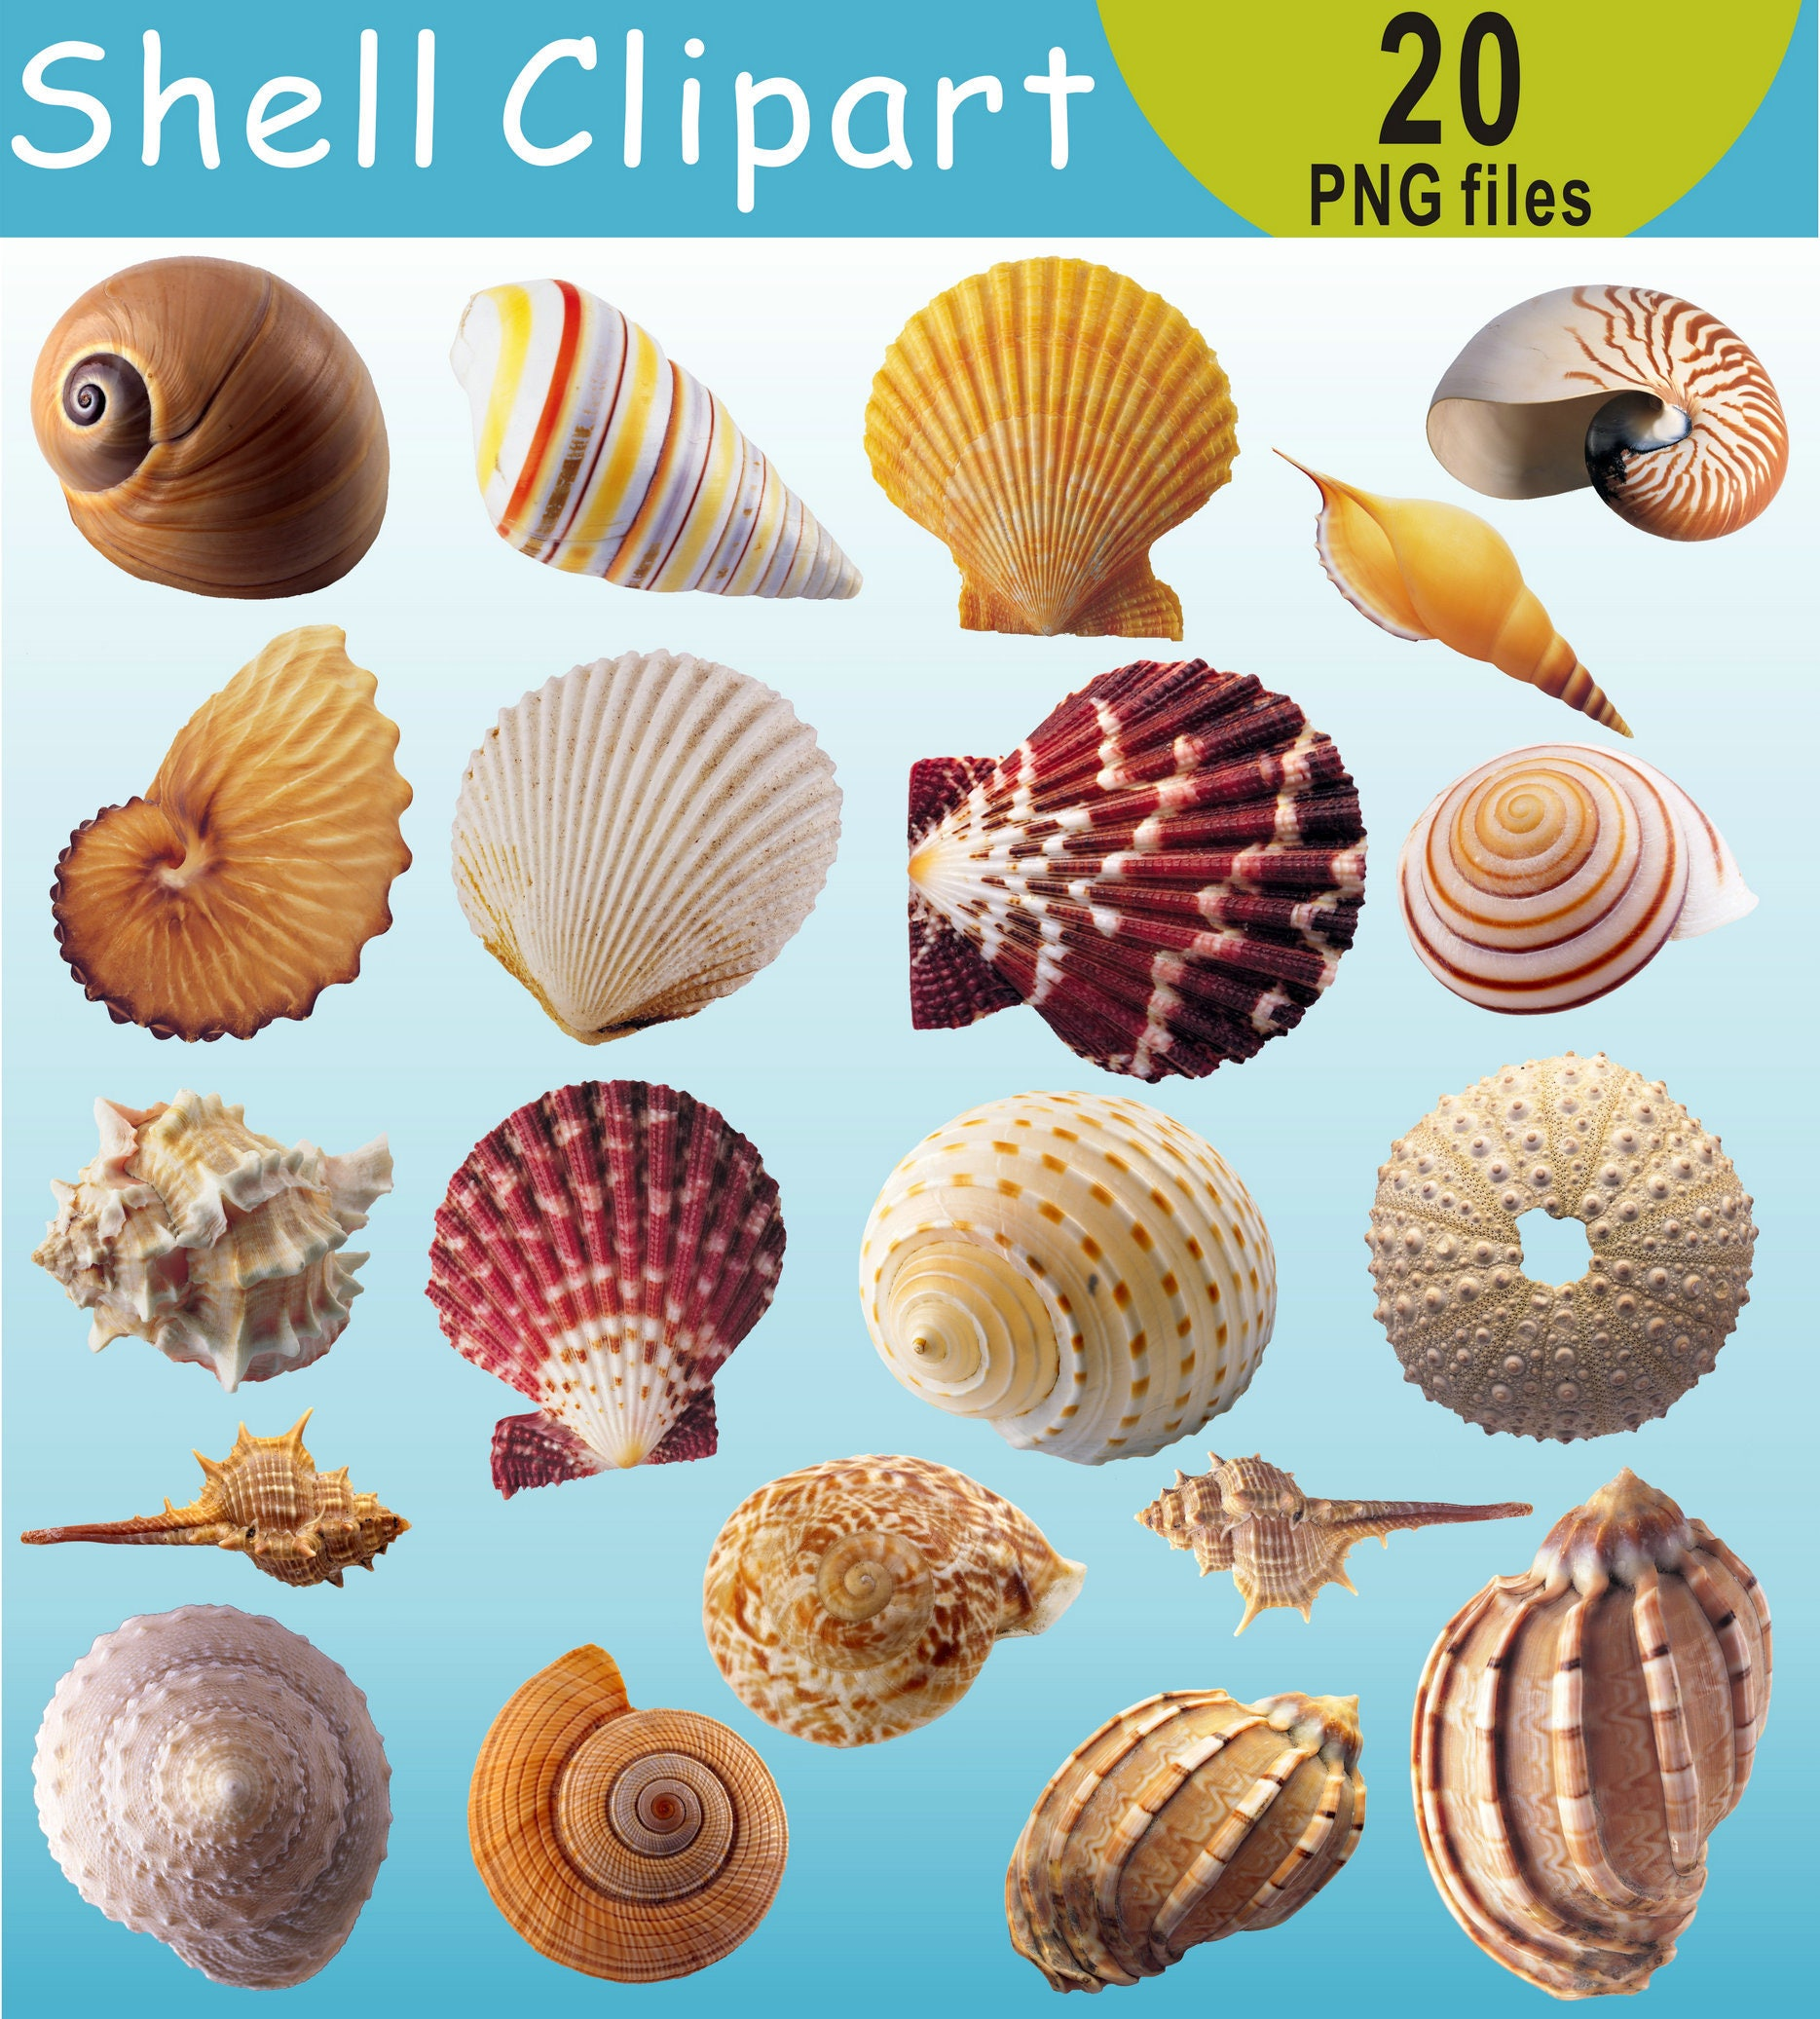 Seashells clip art images watercolor hand painted Under the sea